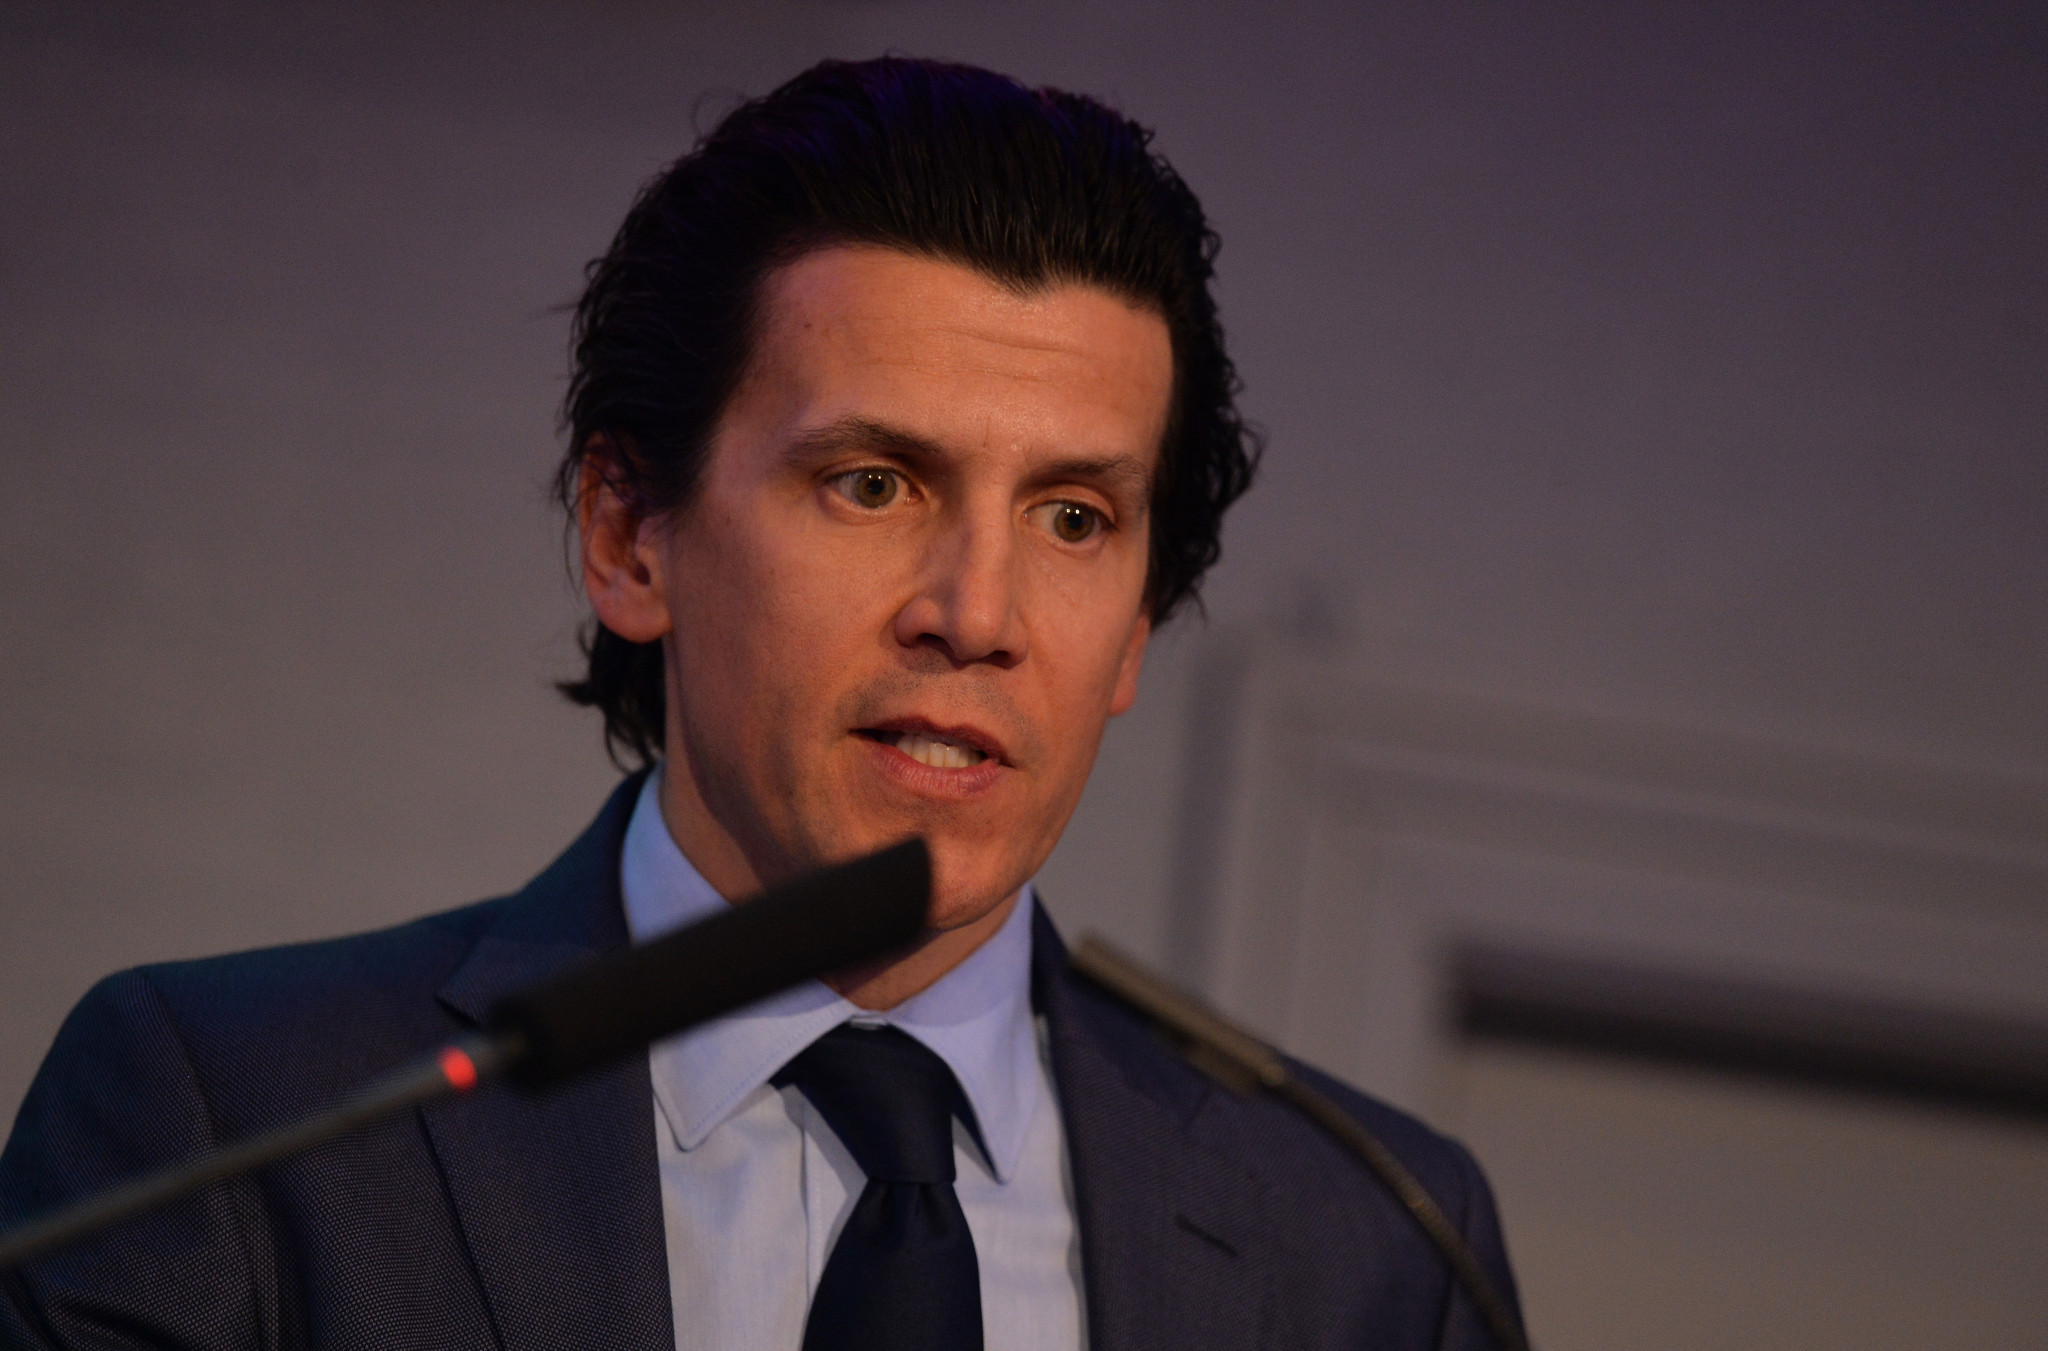 Dubi talks up Stockholm's chances of hosting 2026 Winter Games and claims not concerned about political situation